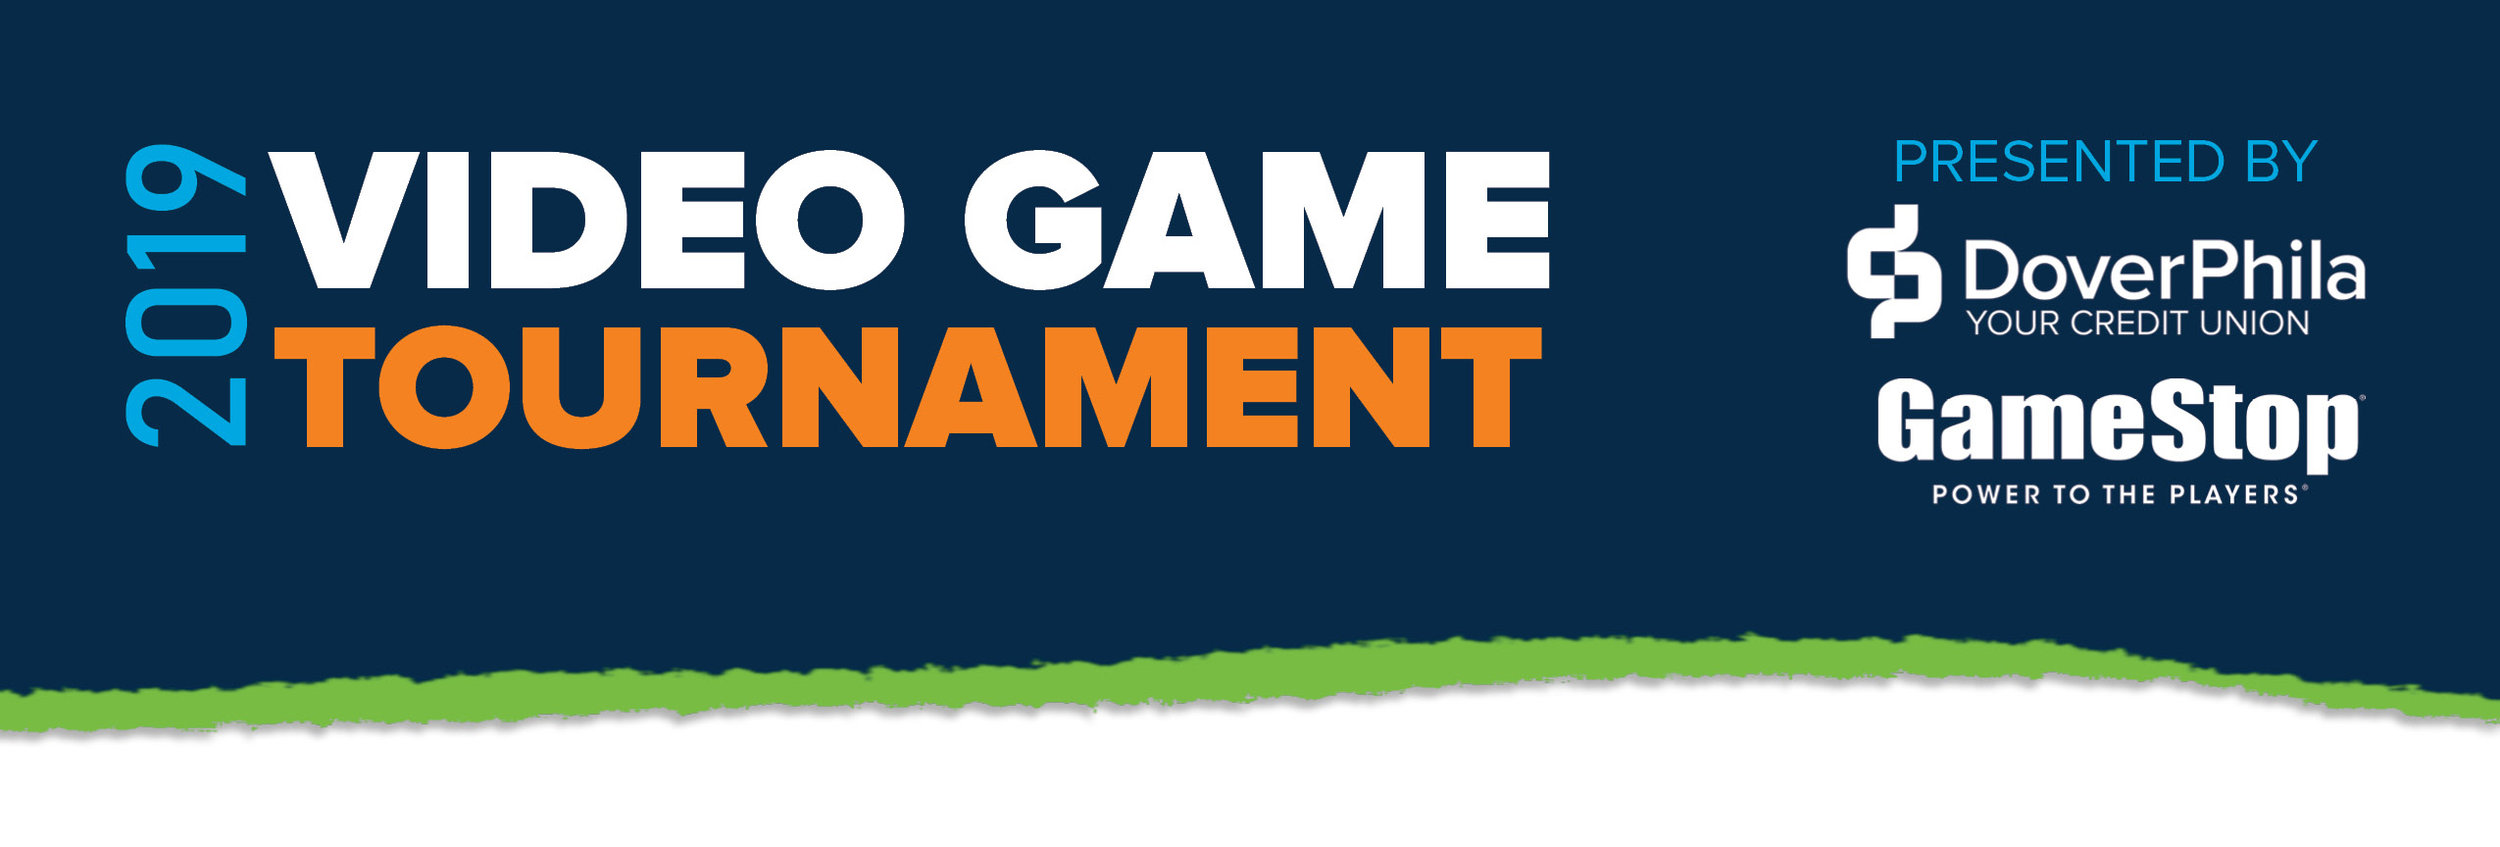 2019 Video Game Tournament Presented by DoverPhilaFederal Credit Union and GameStop